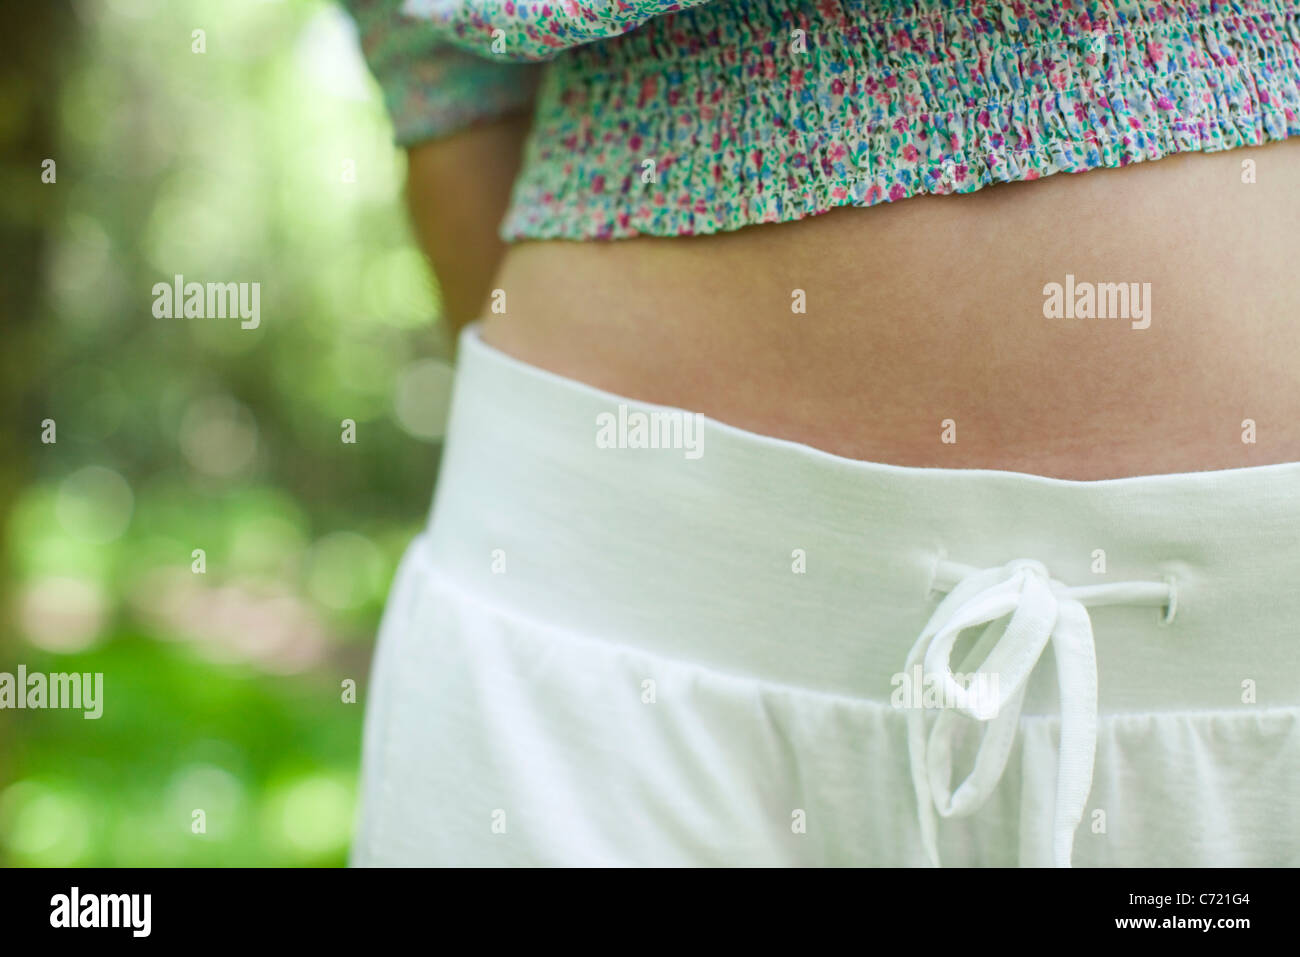 Young woman's abdomen, mid section - Stock Image